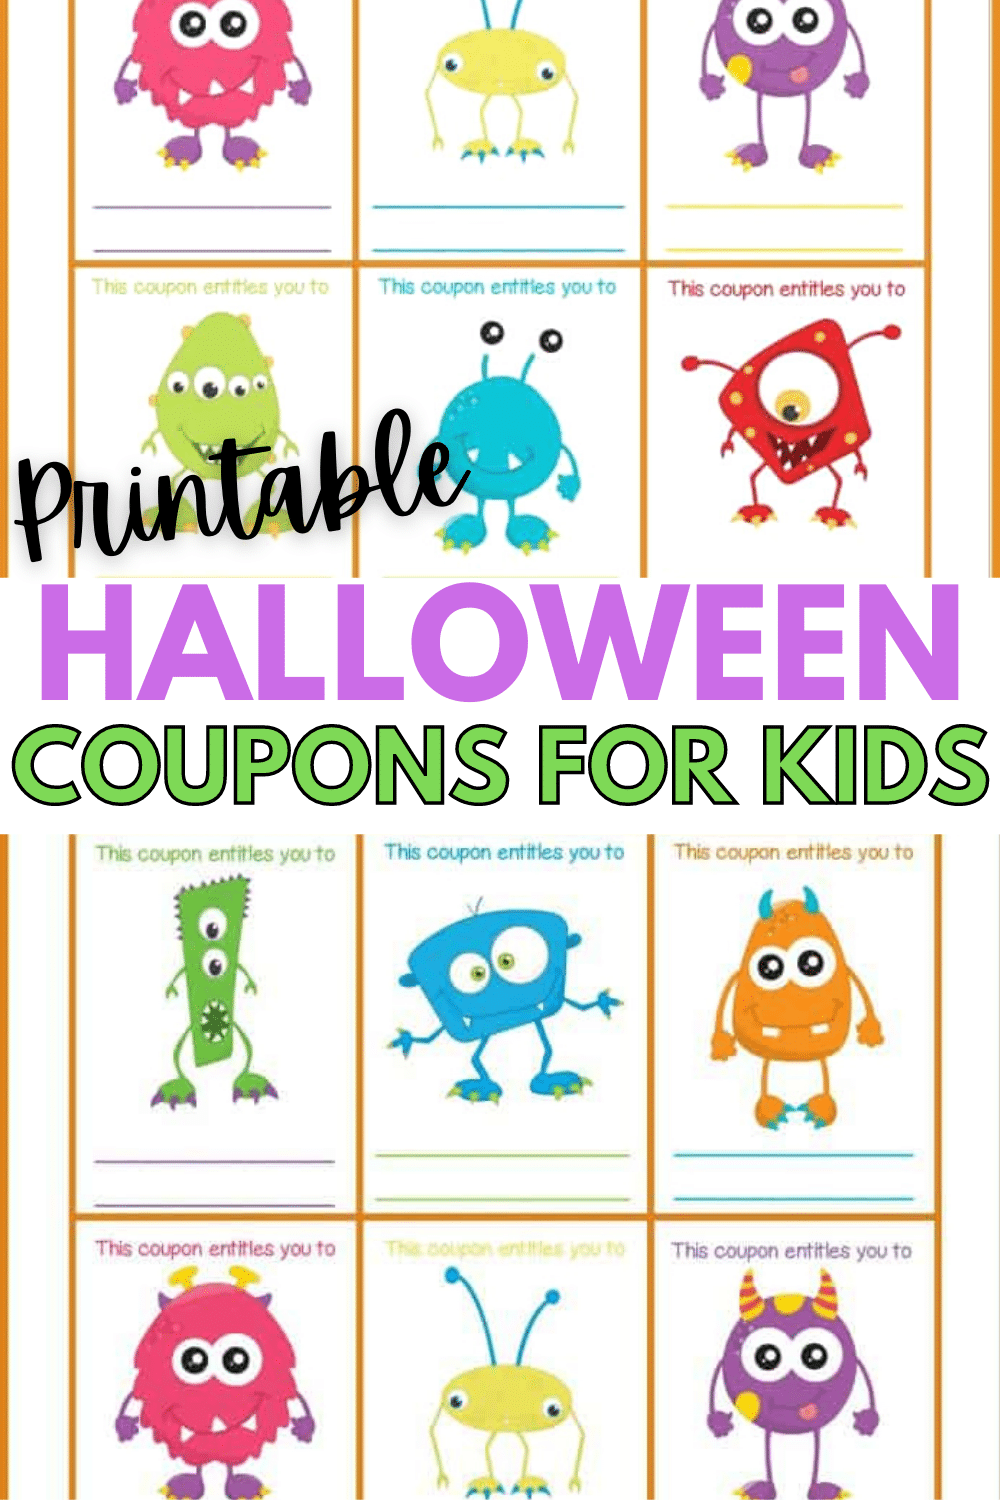 These printable Halloween coupons for kids make a fun non-candy treat for kids and are also a great way to get them to voluntarily give up candy. #printables #freeprintables #halloweenprintables #halloweencoupons #couponprintables via @wondermomwannab